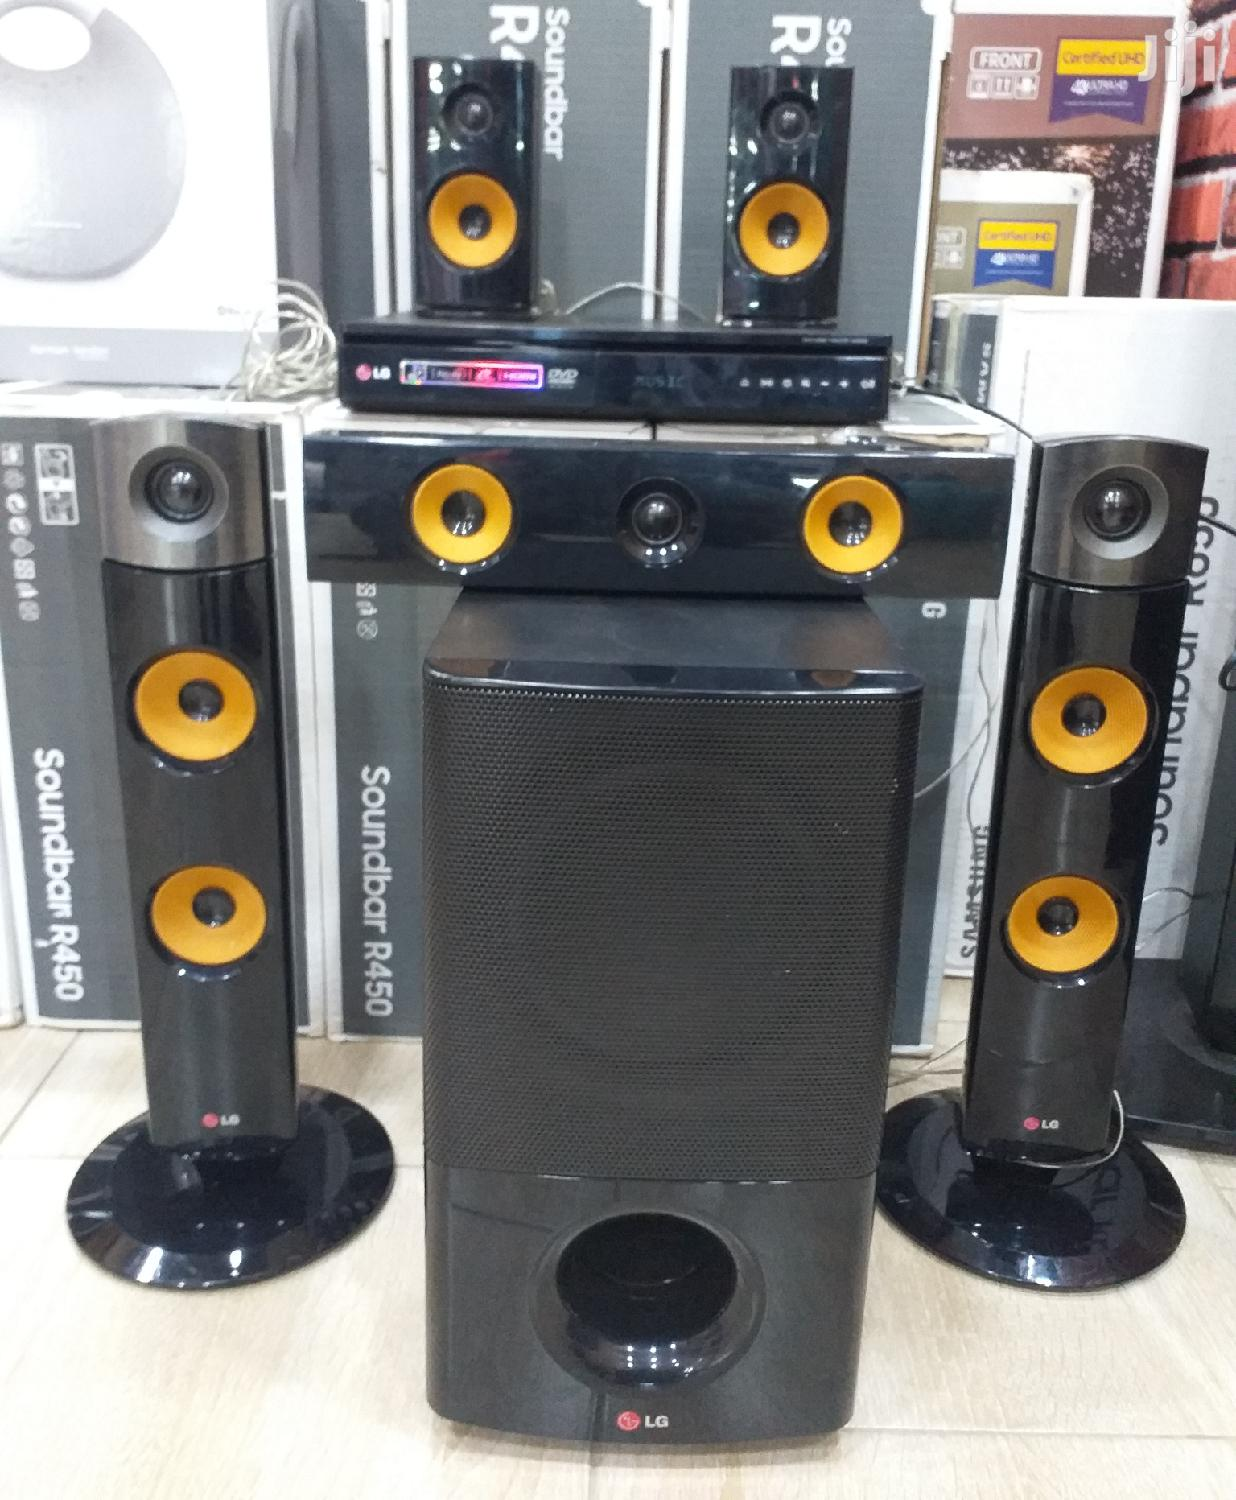 Archive: LG Home Theatre System 1000 Watts